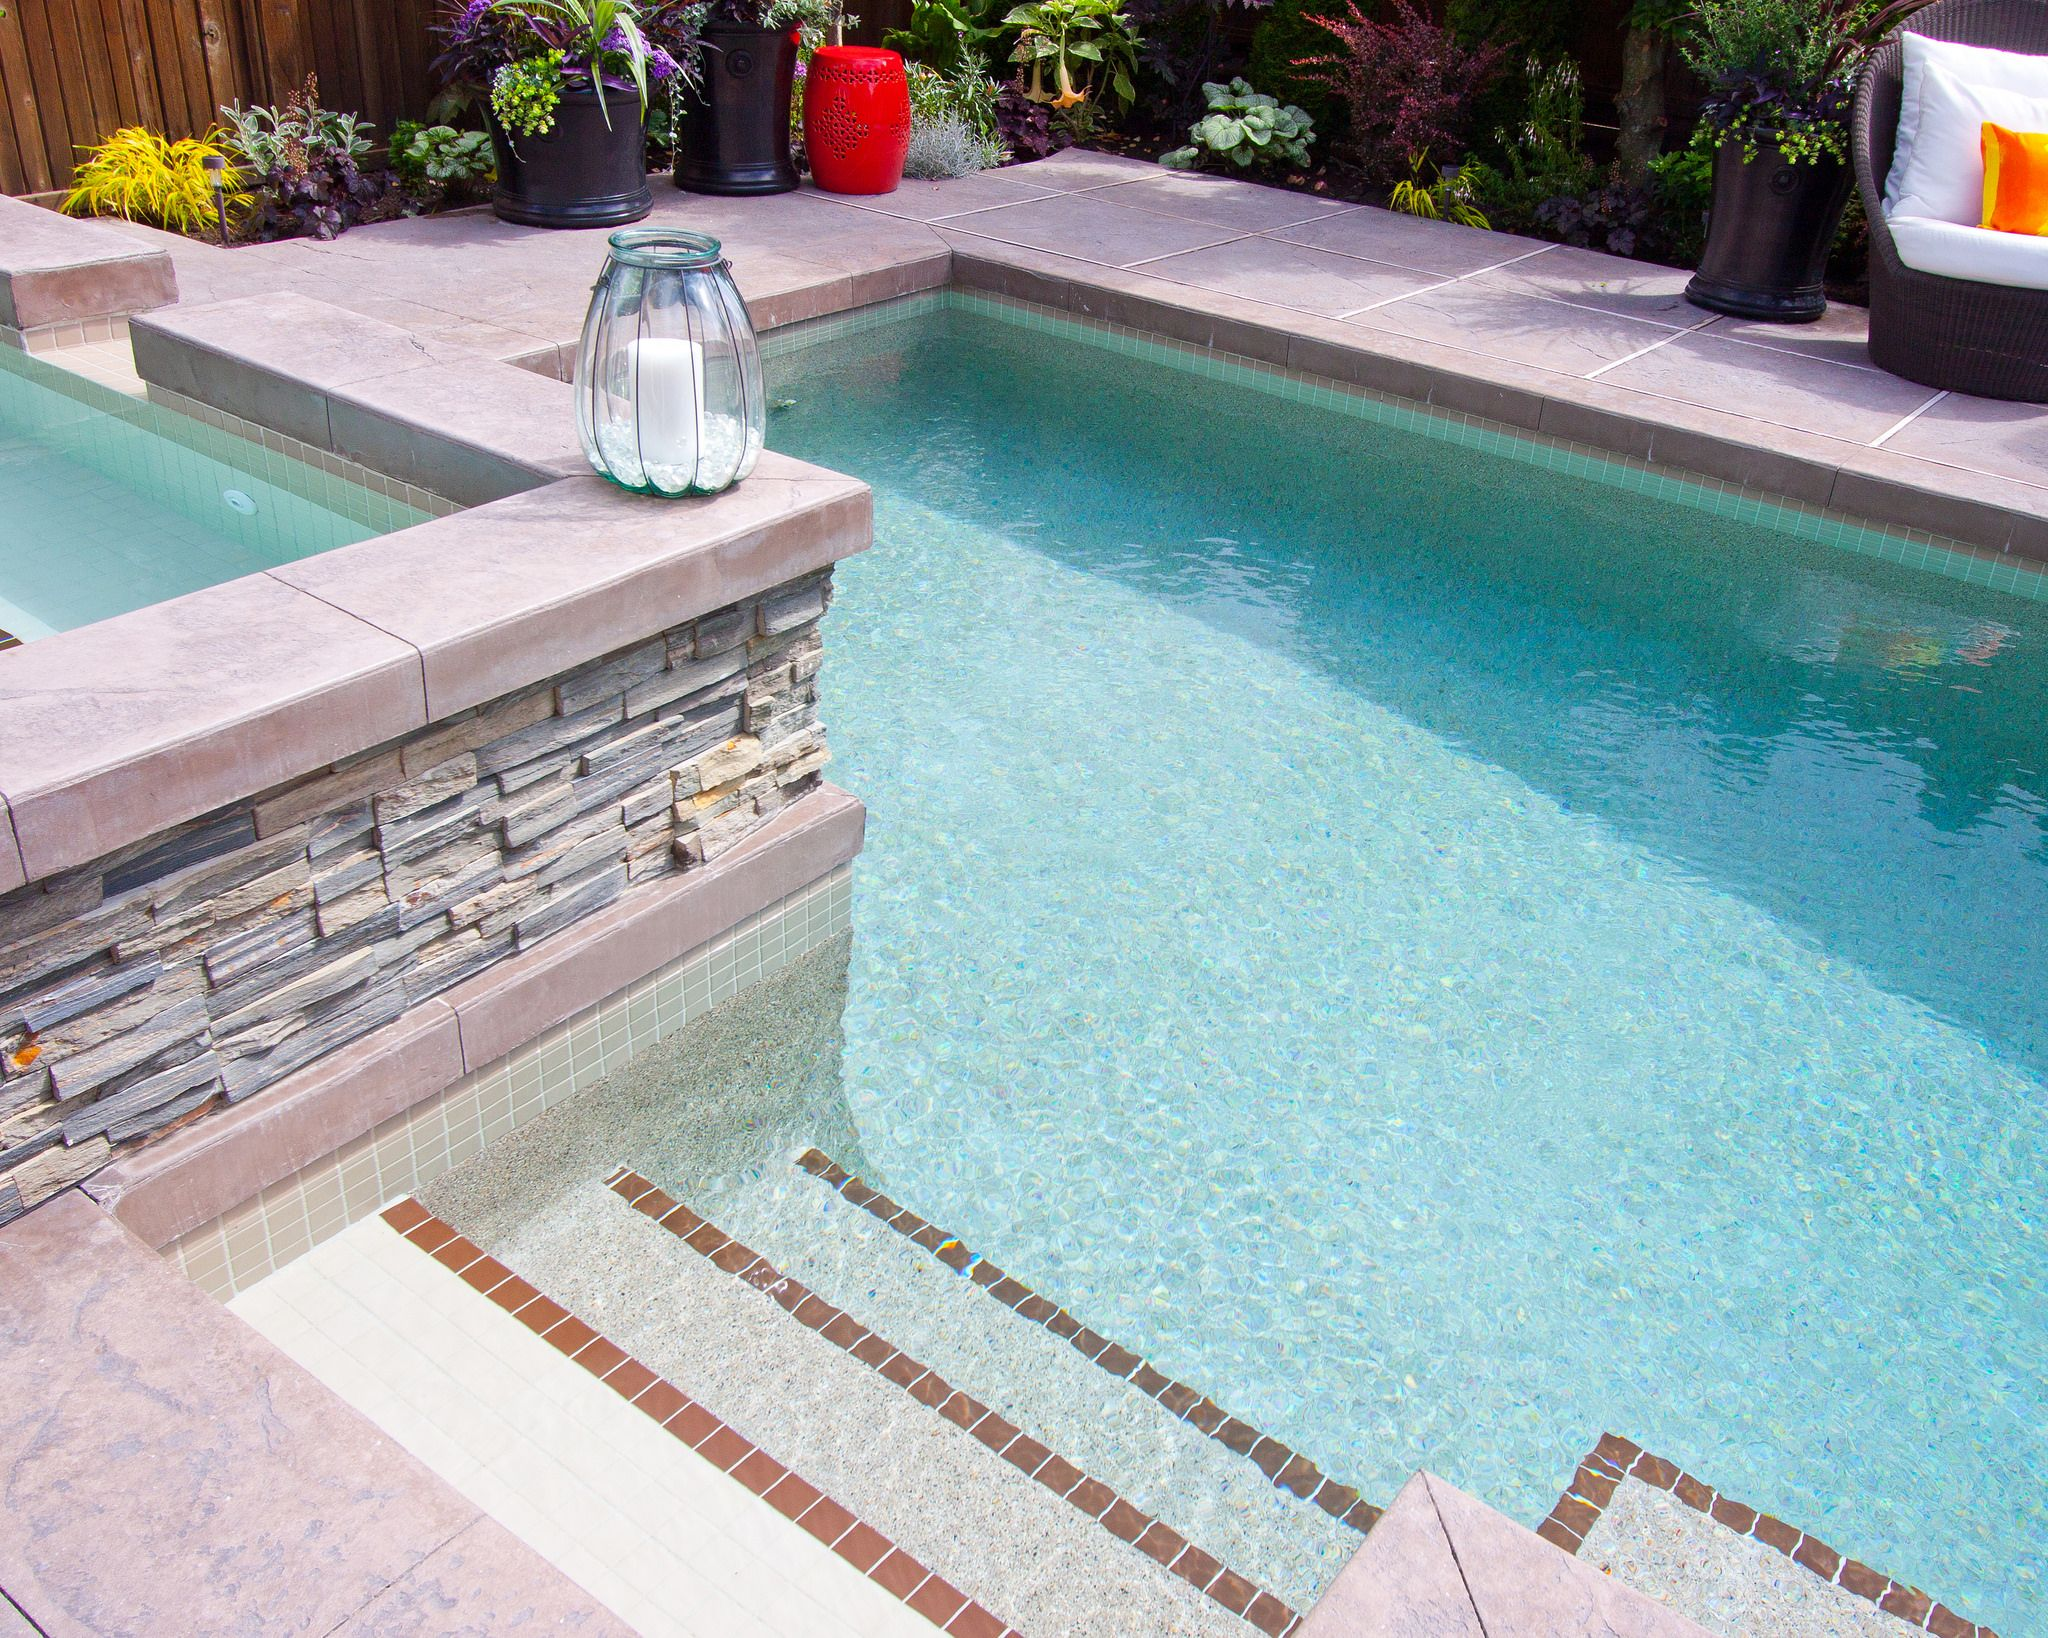 Wonderful Pool Finish Ideas For You To Copy: 1500+ Trend Home Design